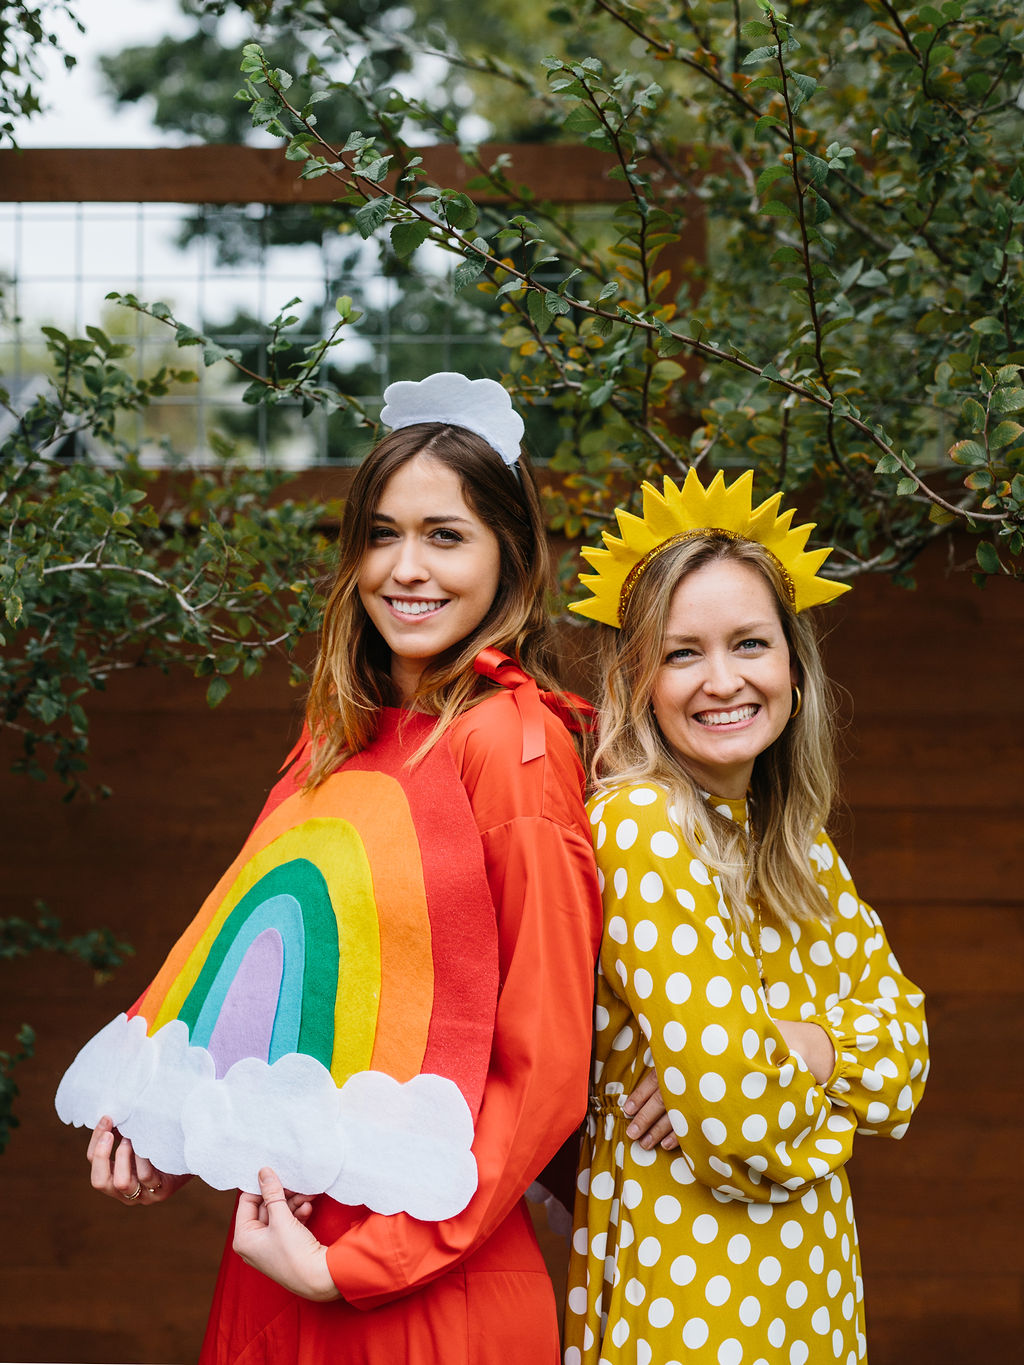 Halloween Friend Costumes.The Easiest Diy Halloween Costume For Friends A Rainbow And